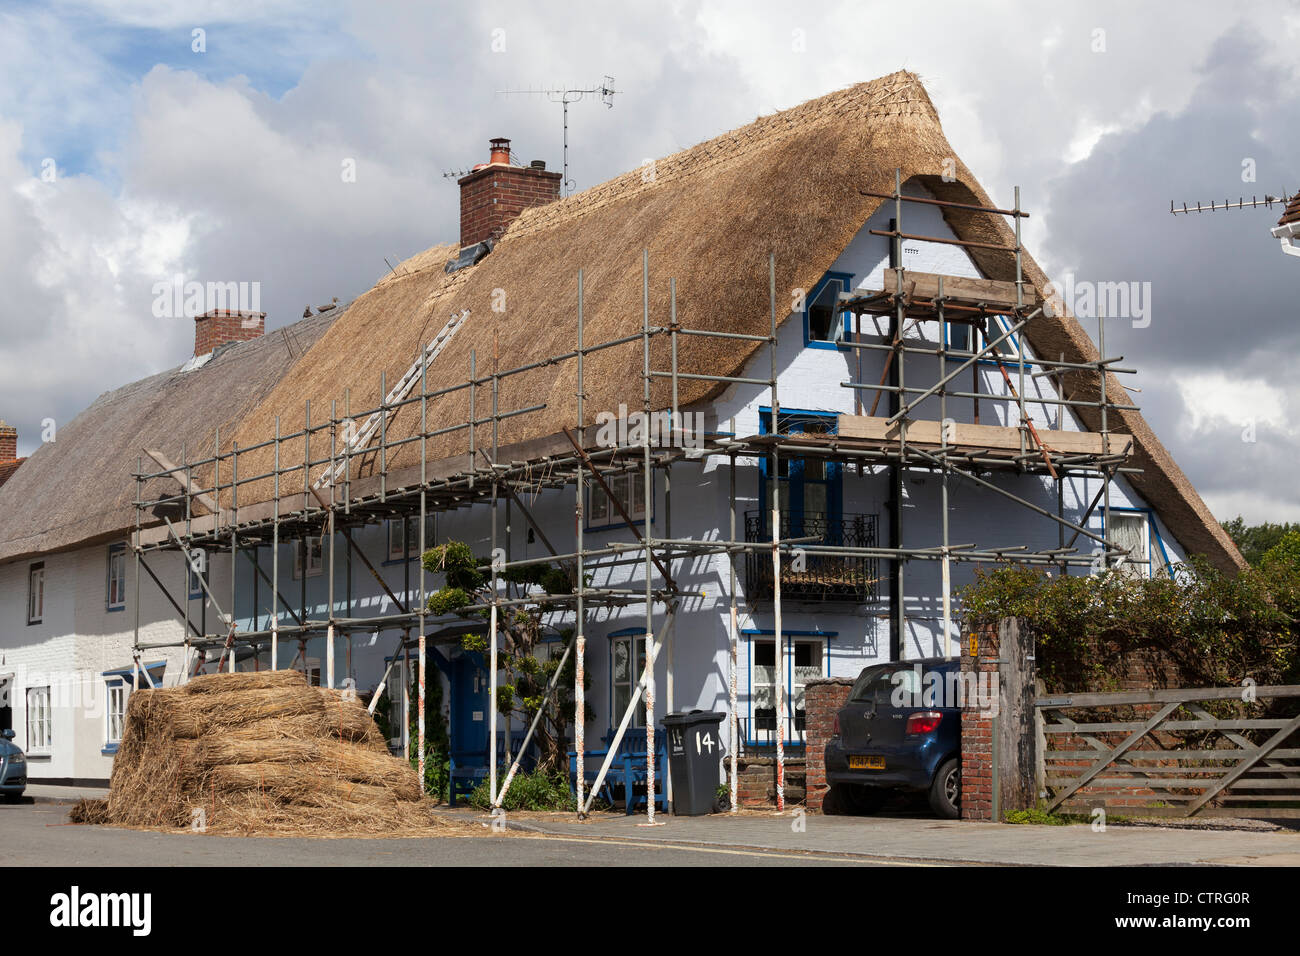 A thatched house in the process of being retached  with scaffold and stack of thatch waiting to be used - Stock Image